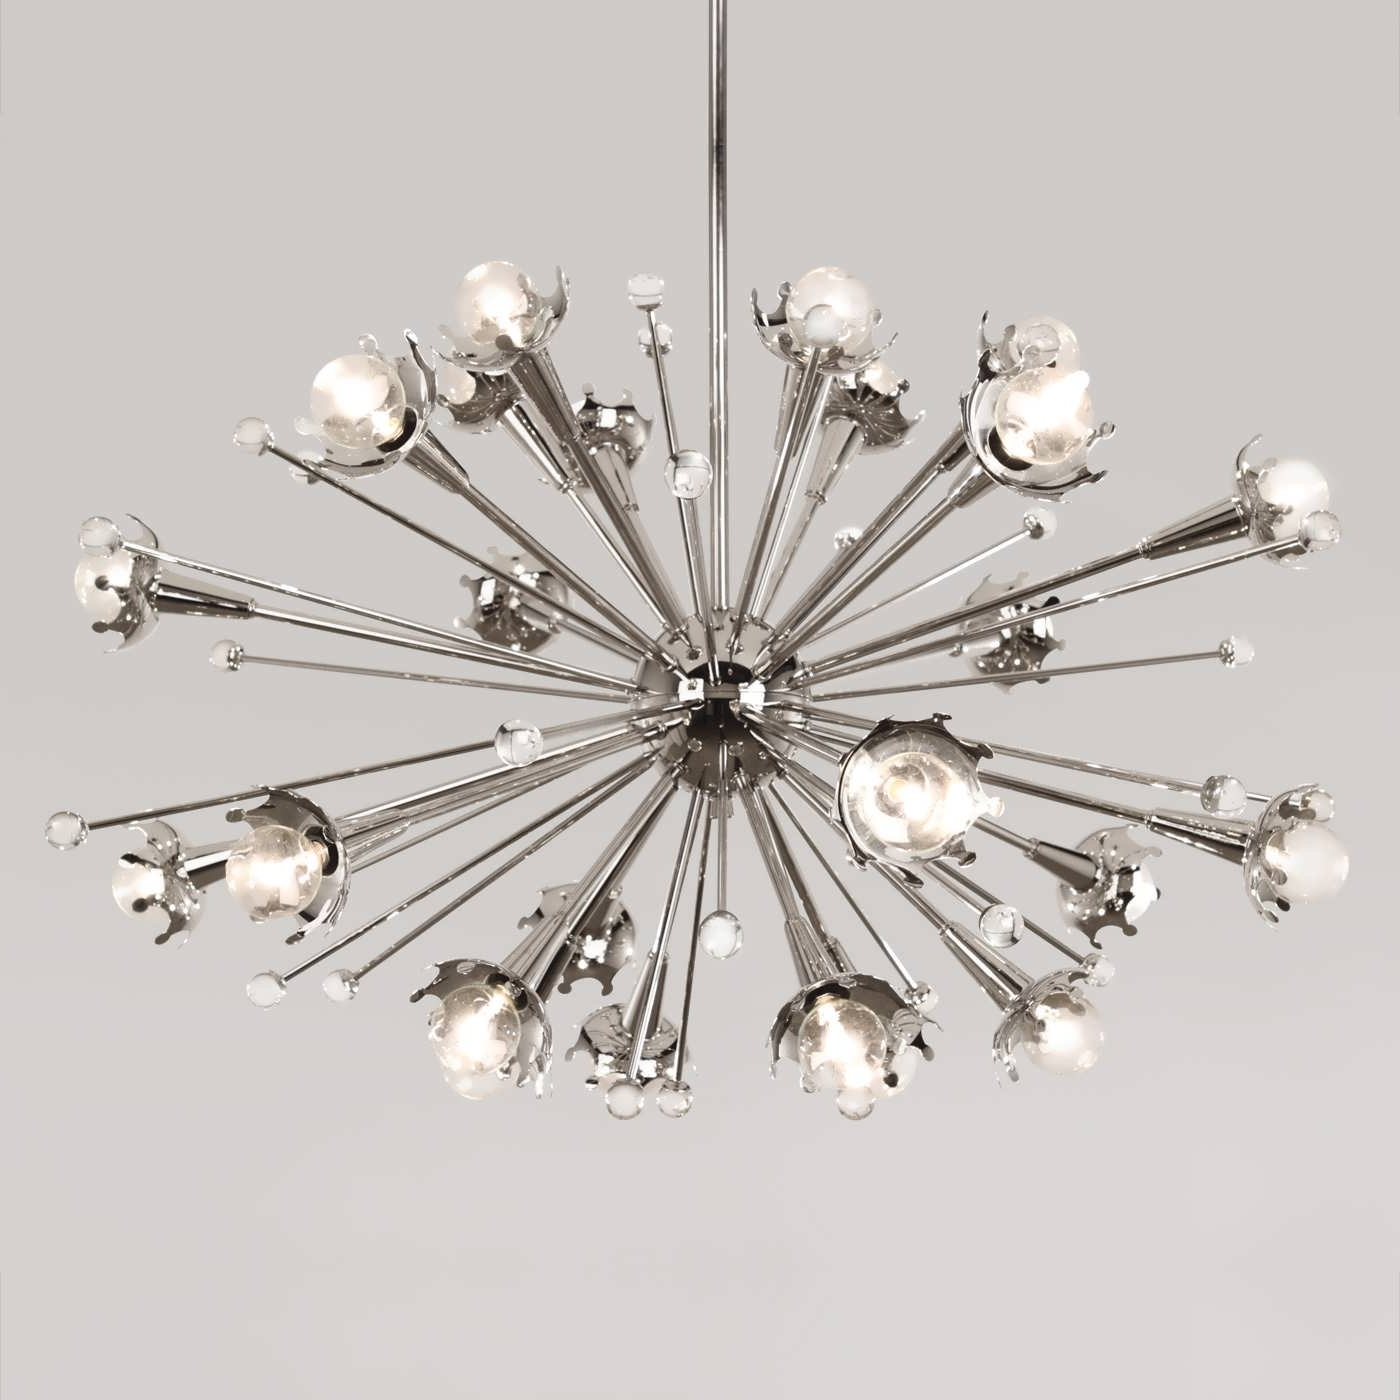 Atom Chandeliers Regarding Popular Chandelier : Overstock Chandeliers Chandelier Lamp Sputnik Style (View 7 of 15)